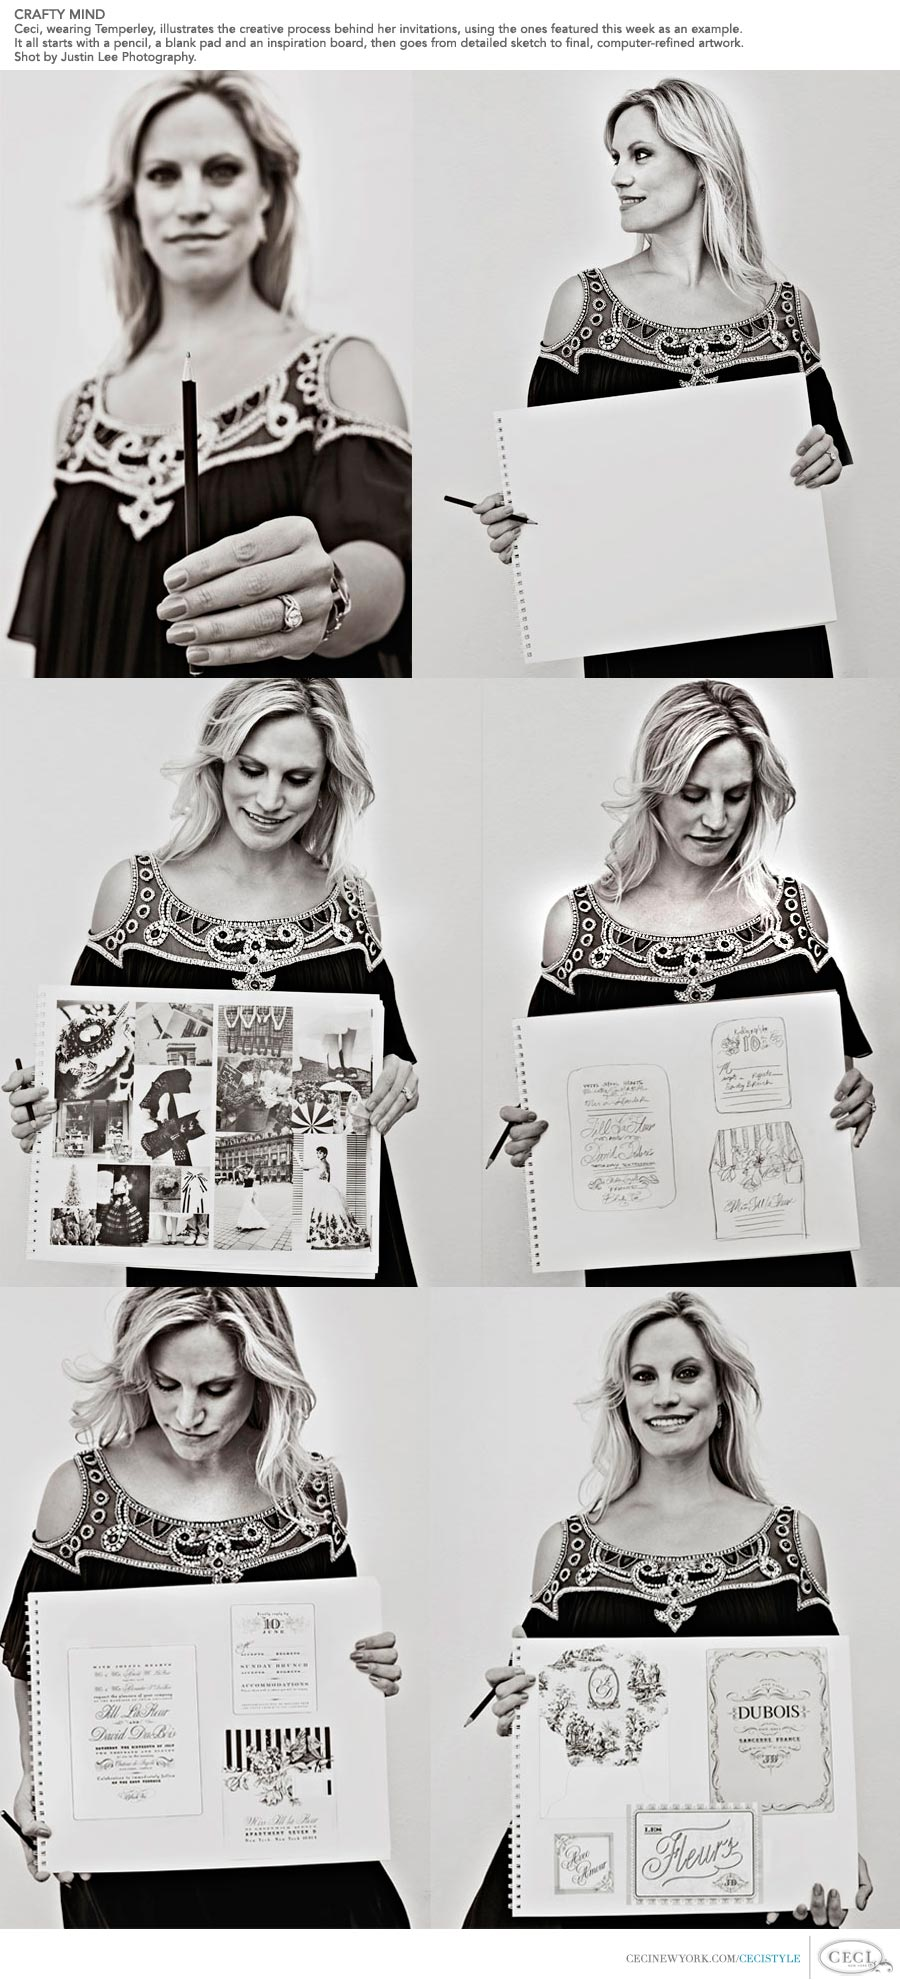 Ceci Johnson of Ceci New York - CRAFTY MIND: Ceci, wearing Temperley, illustrates the creative process behind her invitations, using the ones featured this week as an example. It all starts with a pencil, a blank pad and an inspiration board, then goes from detailed sketch to final, computer-refined artwork. Shot by Justin Lee Photography.